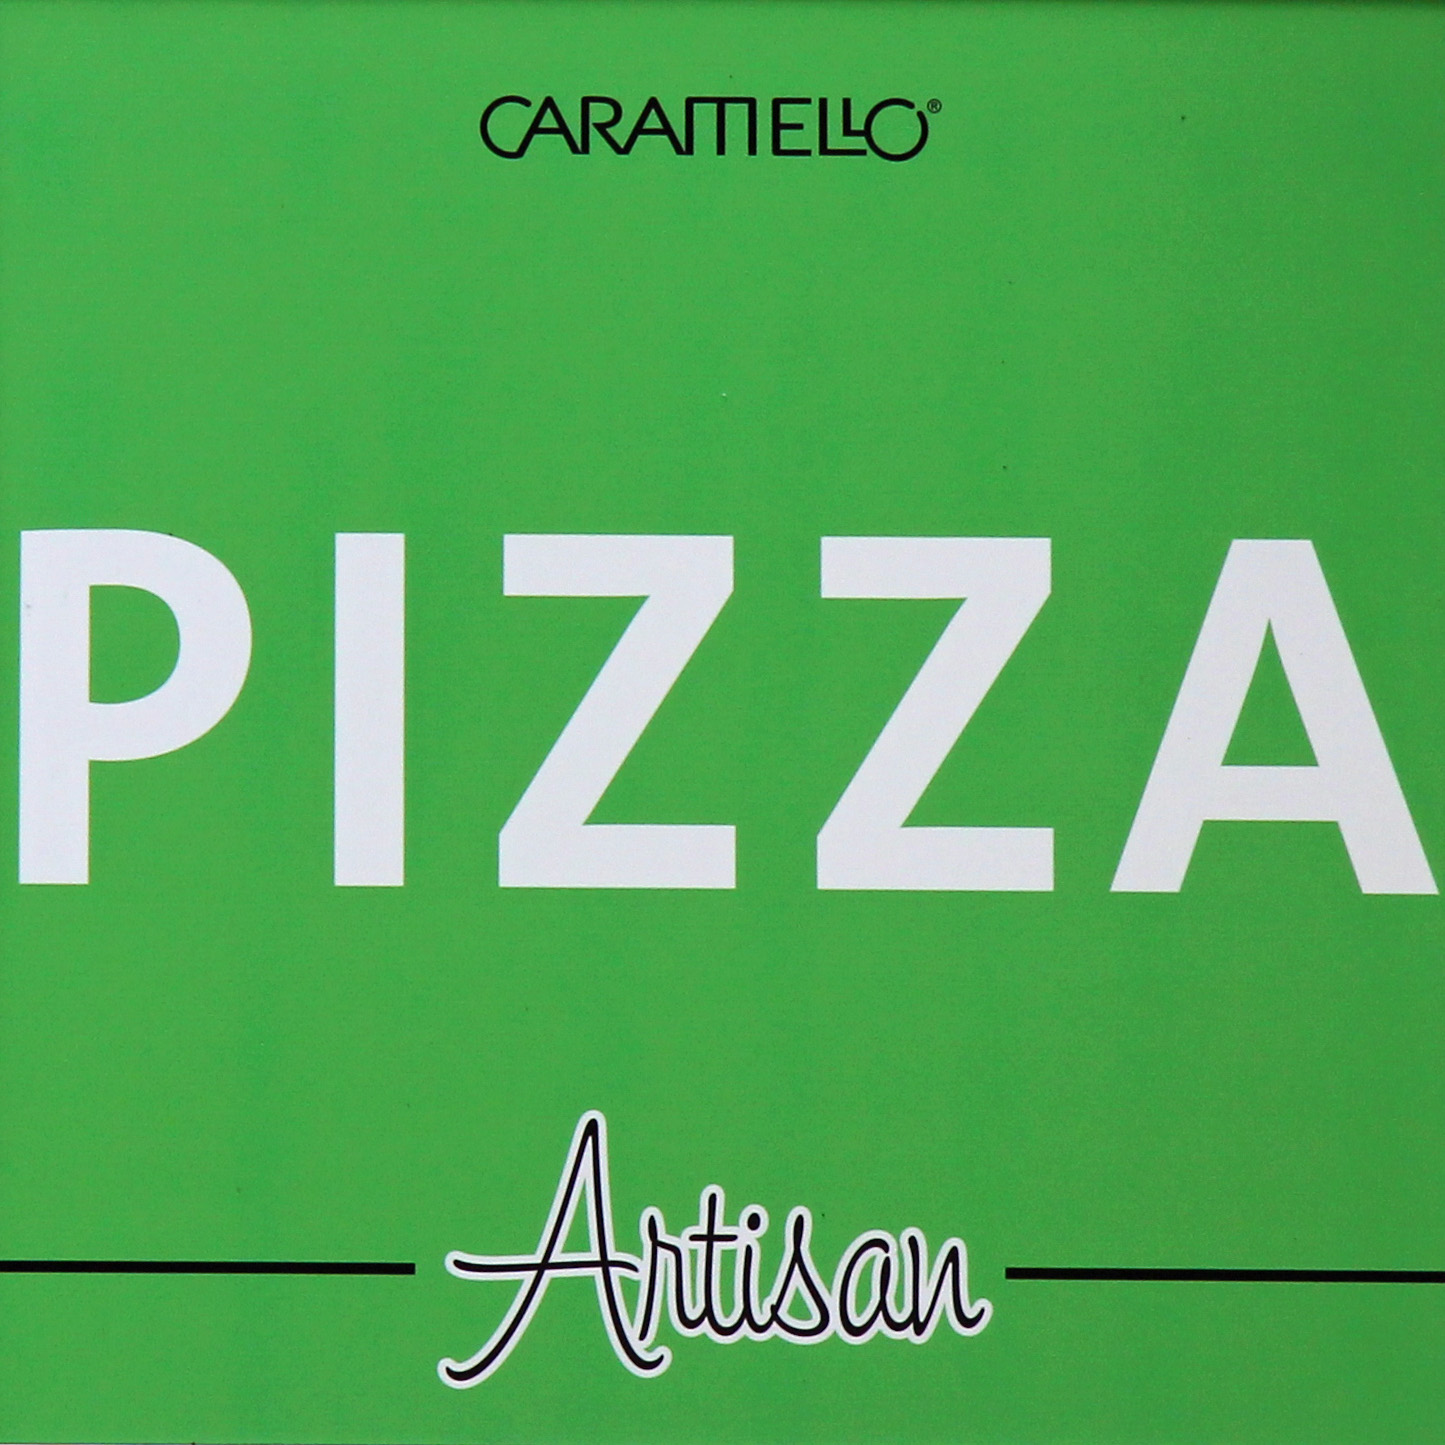 The sign at Caramello, serving Pizza and Eis, in Prenzlauer Berg, Berlin